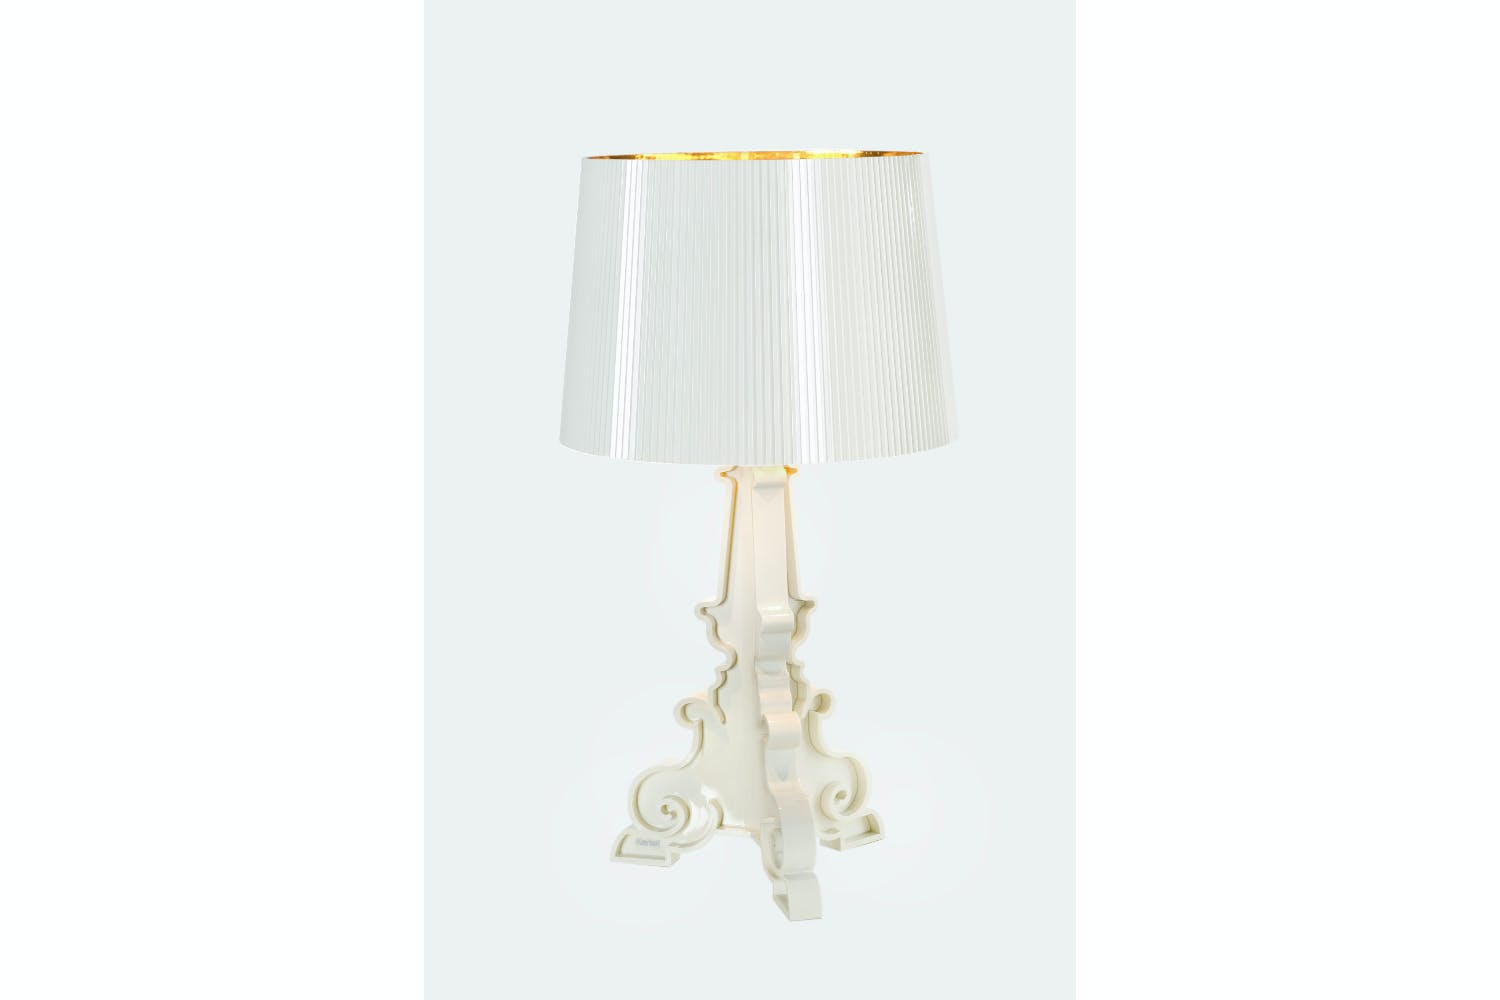 bourgie whitegold table lamp by ferruccio laviani for kartell bourgie ferruccio laviani